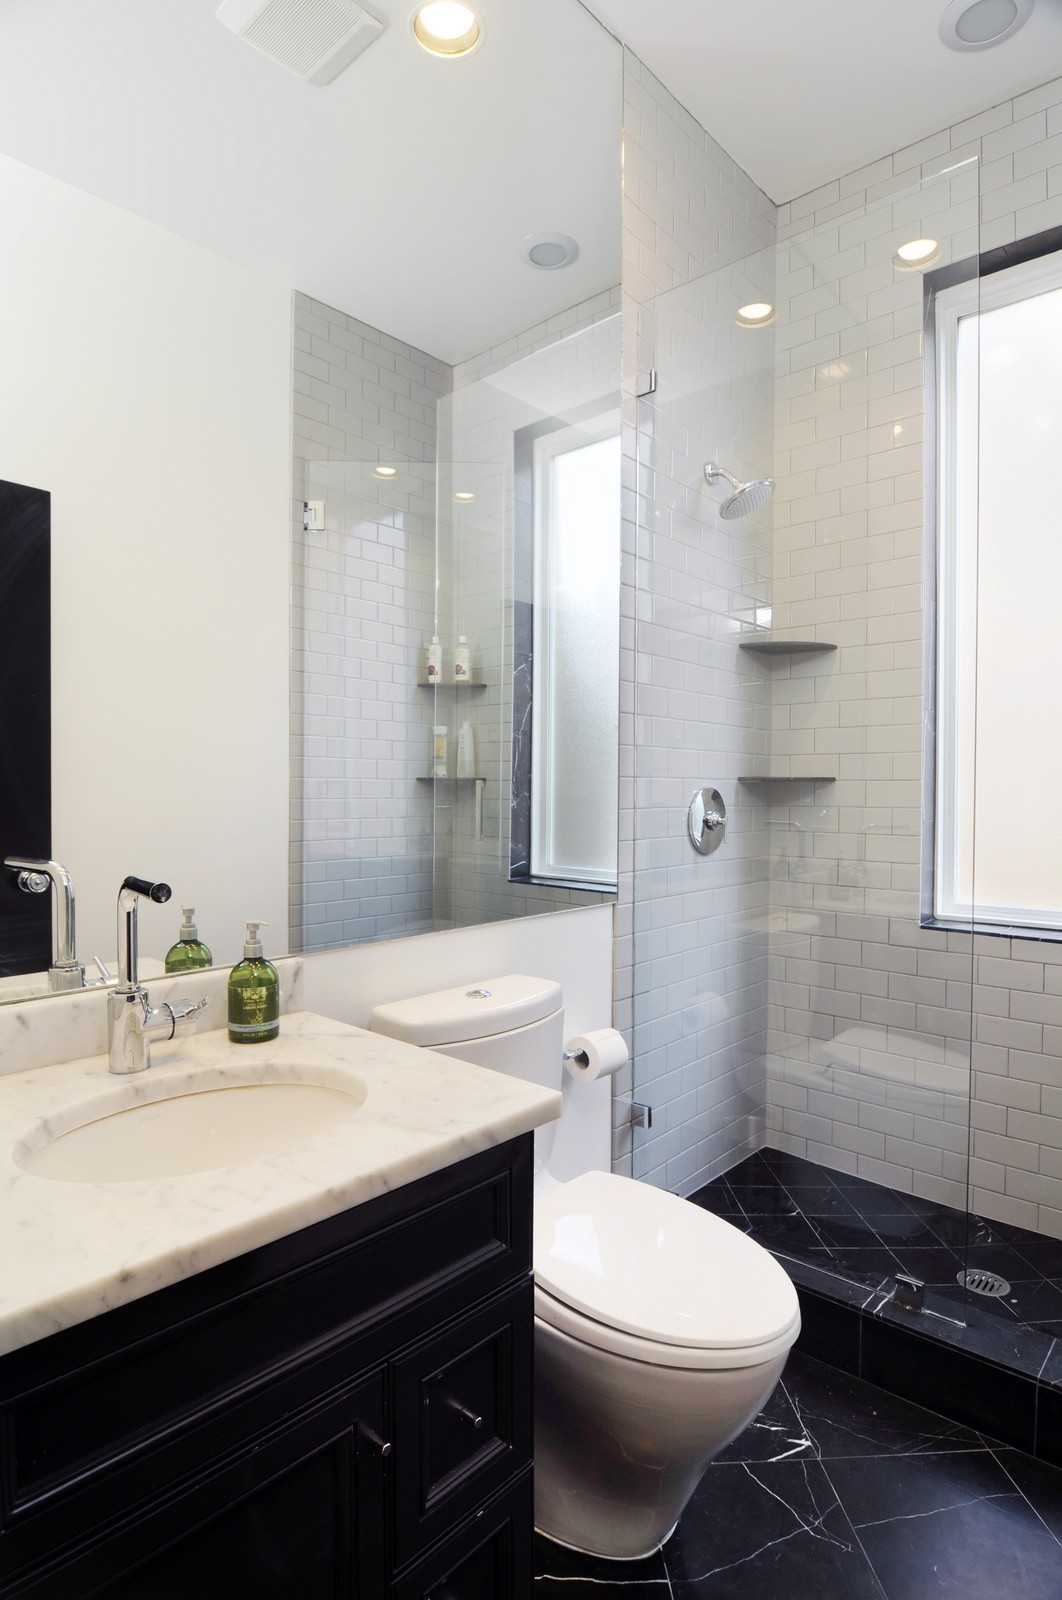 Real Estate Photography - 855 W Webster, Chicago, IL, 60614 - Bathroom off 2nd bedroom